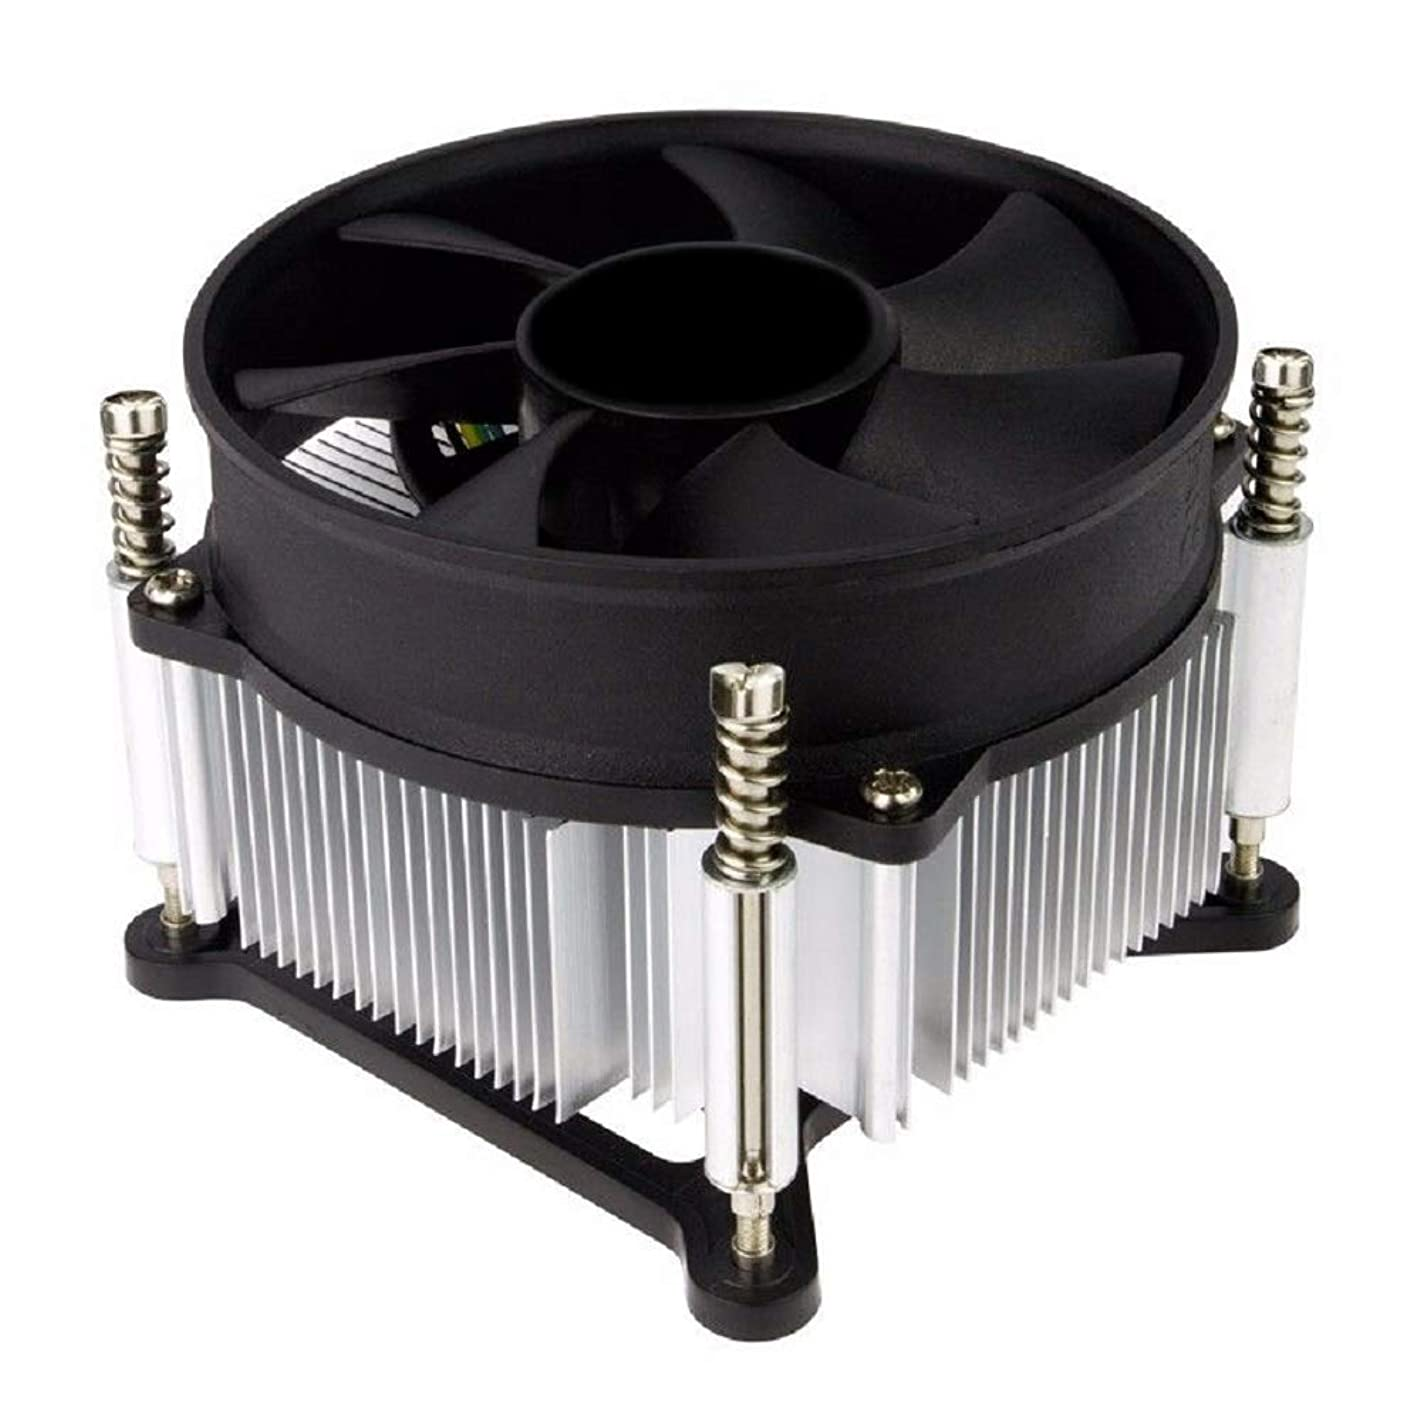 TRONWIRE TW-3 Premium Intel Core i3 / i5 / i7 Socket 1156/1155 / 1151/1150 4-Pin Connector CPU Cooler with Aluminum Heatsink & 3.62-Inch Fan with Pre-Applied Thermal Paste for Desktop PC Computer